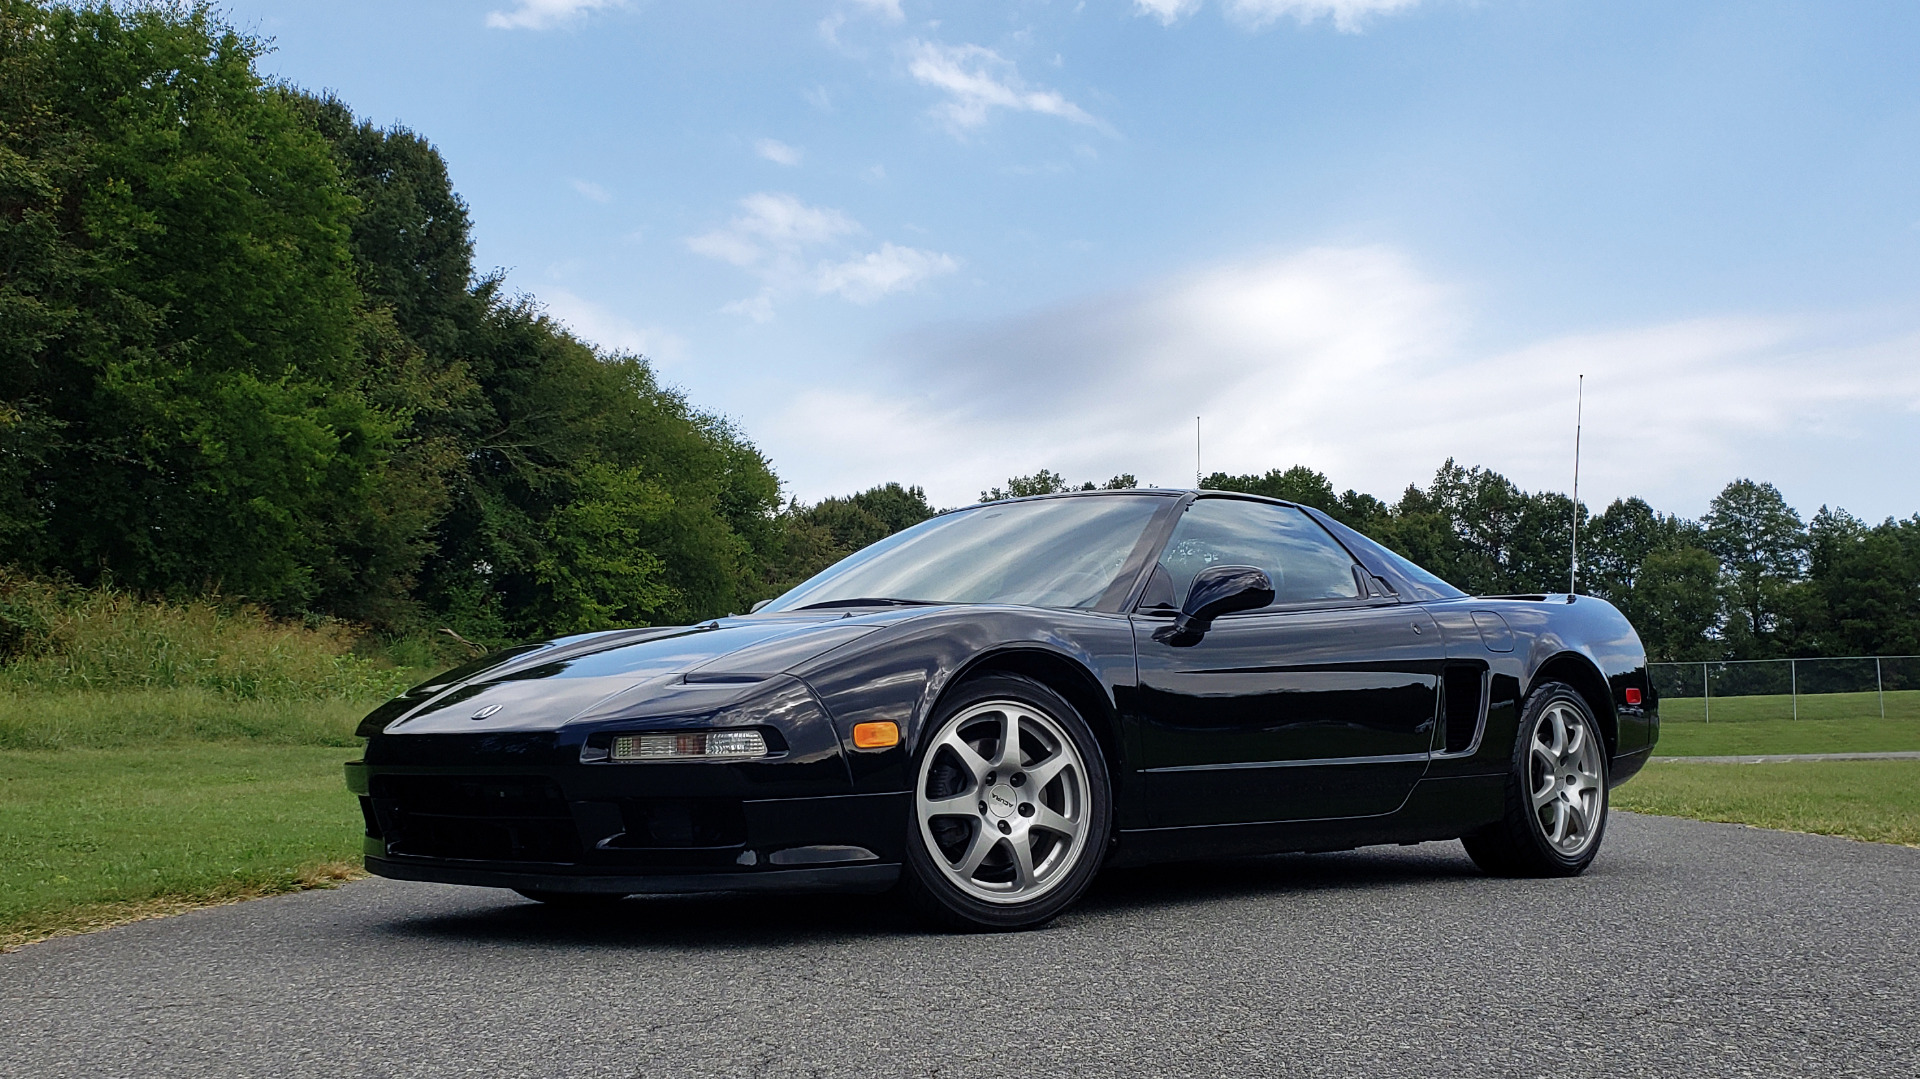 Used 1995 Acura NSX OPEN TOP / 5-SPD MAN / LOW MILES / SUPER CLEAN for sale Sold at Formula Imports in Charlotte NC 28227 2